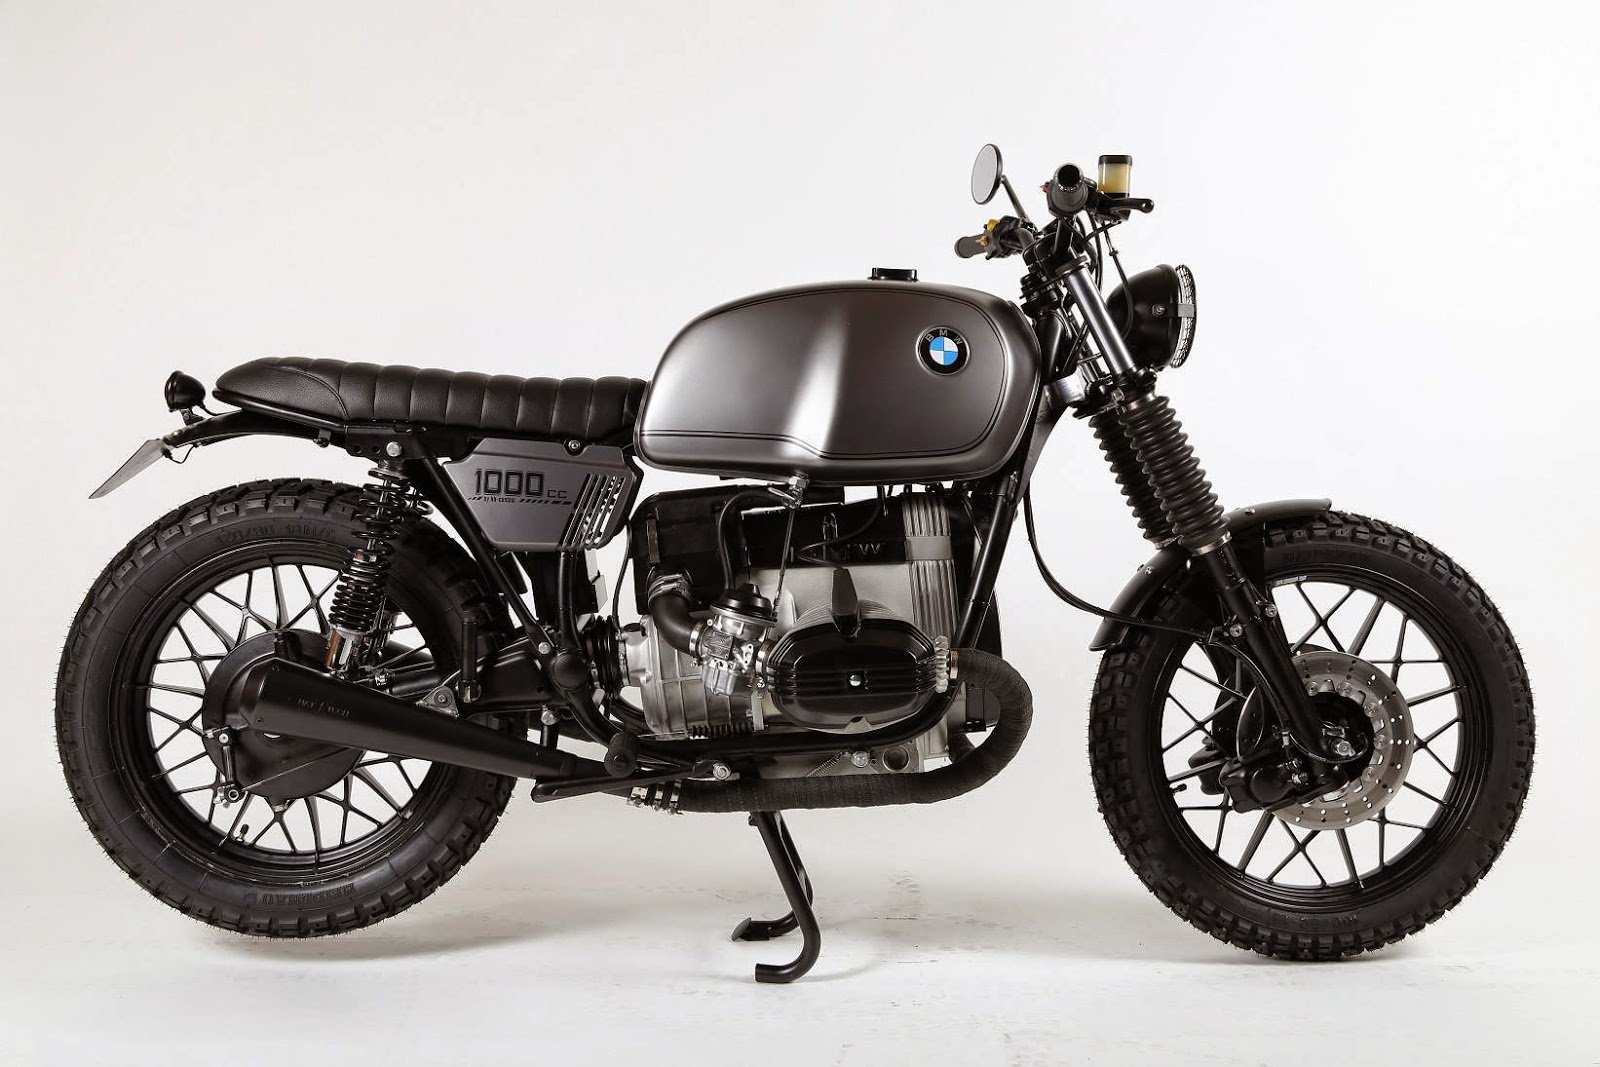 hb custom bmw r100rt rocketgarage cafe racer magazine. Black Bedroom Furniture Sets. Home Design Ideas